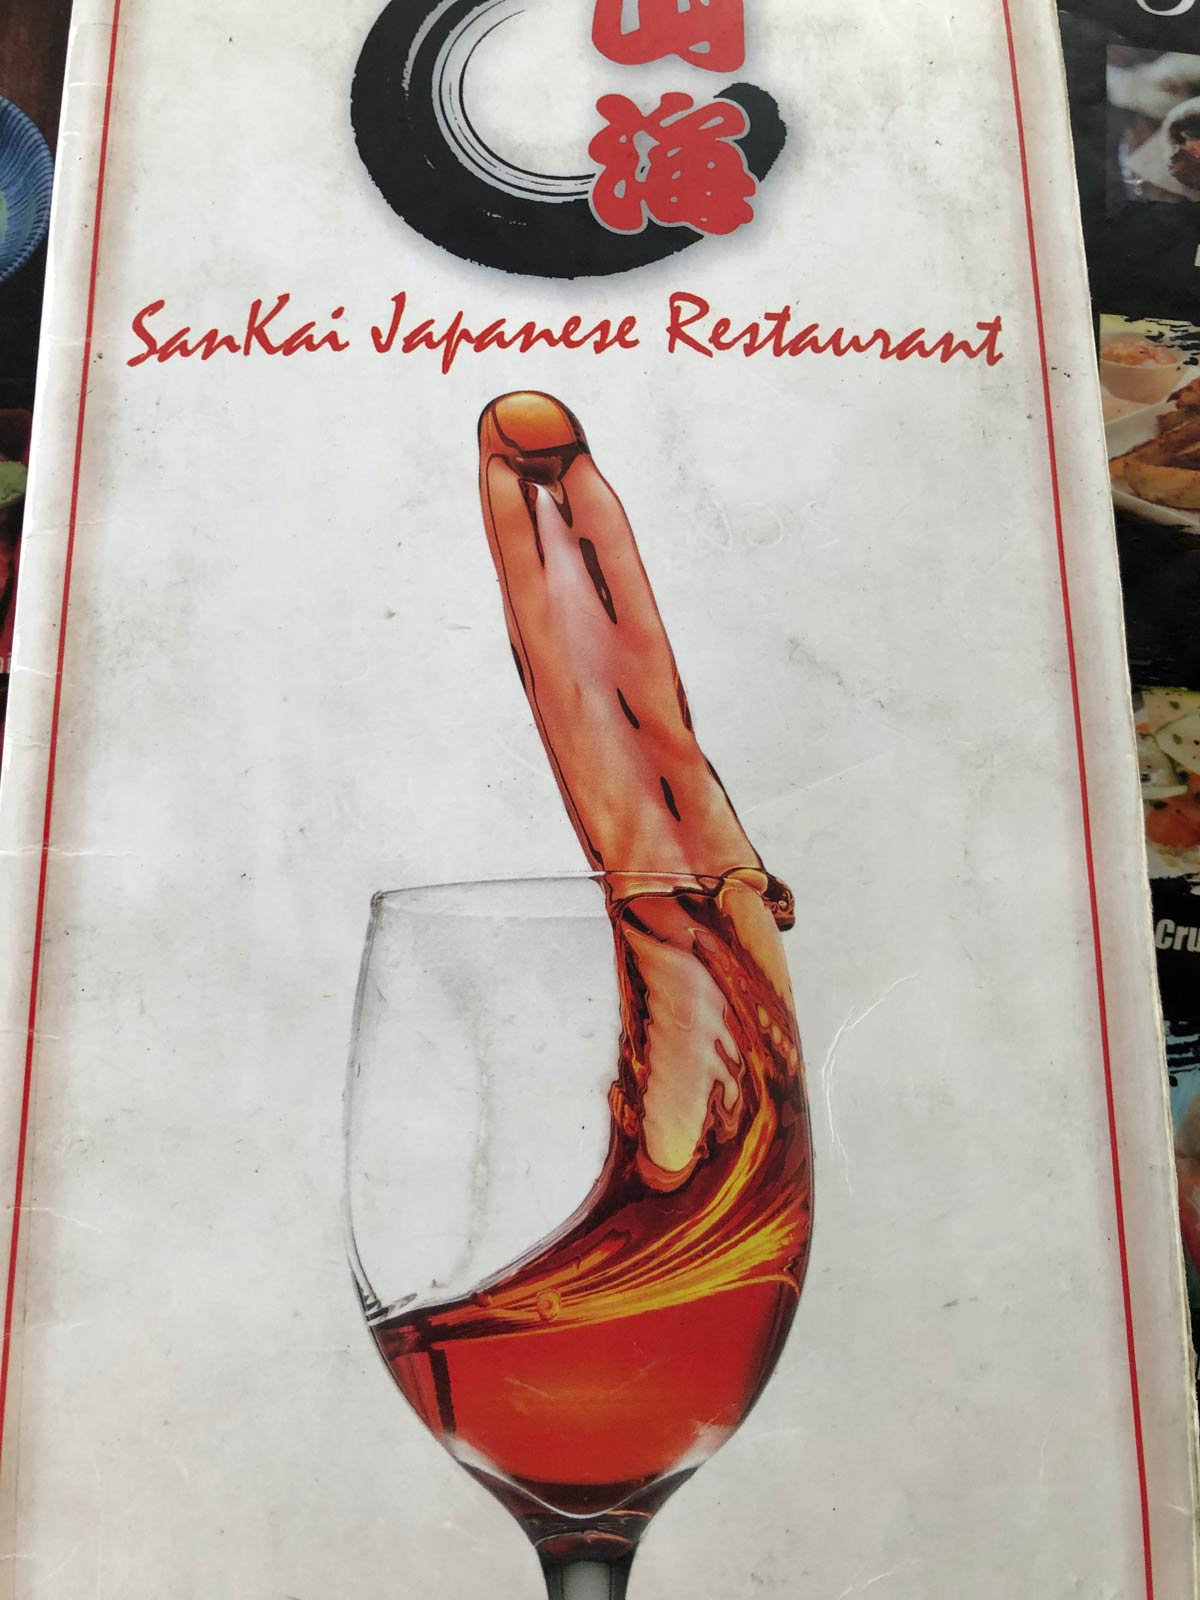 There were some stiff drinks in this cocktail menu